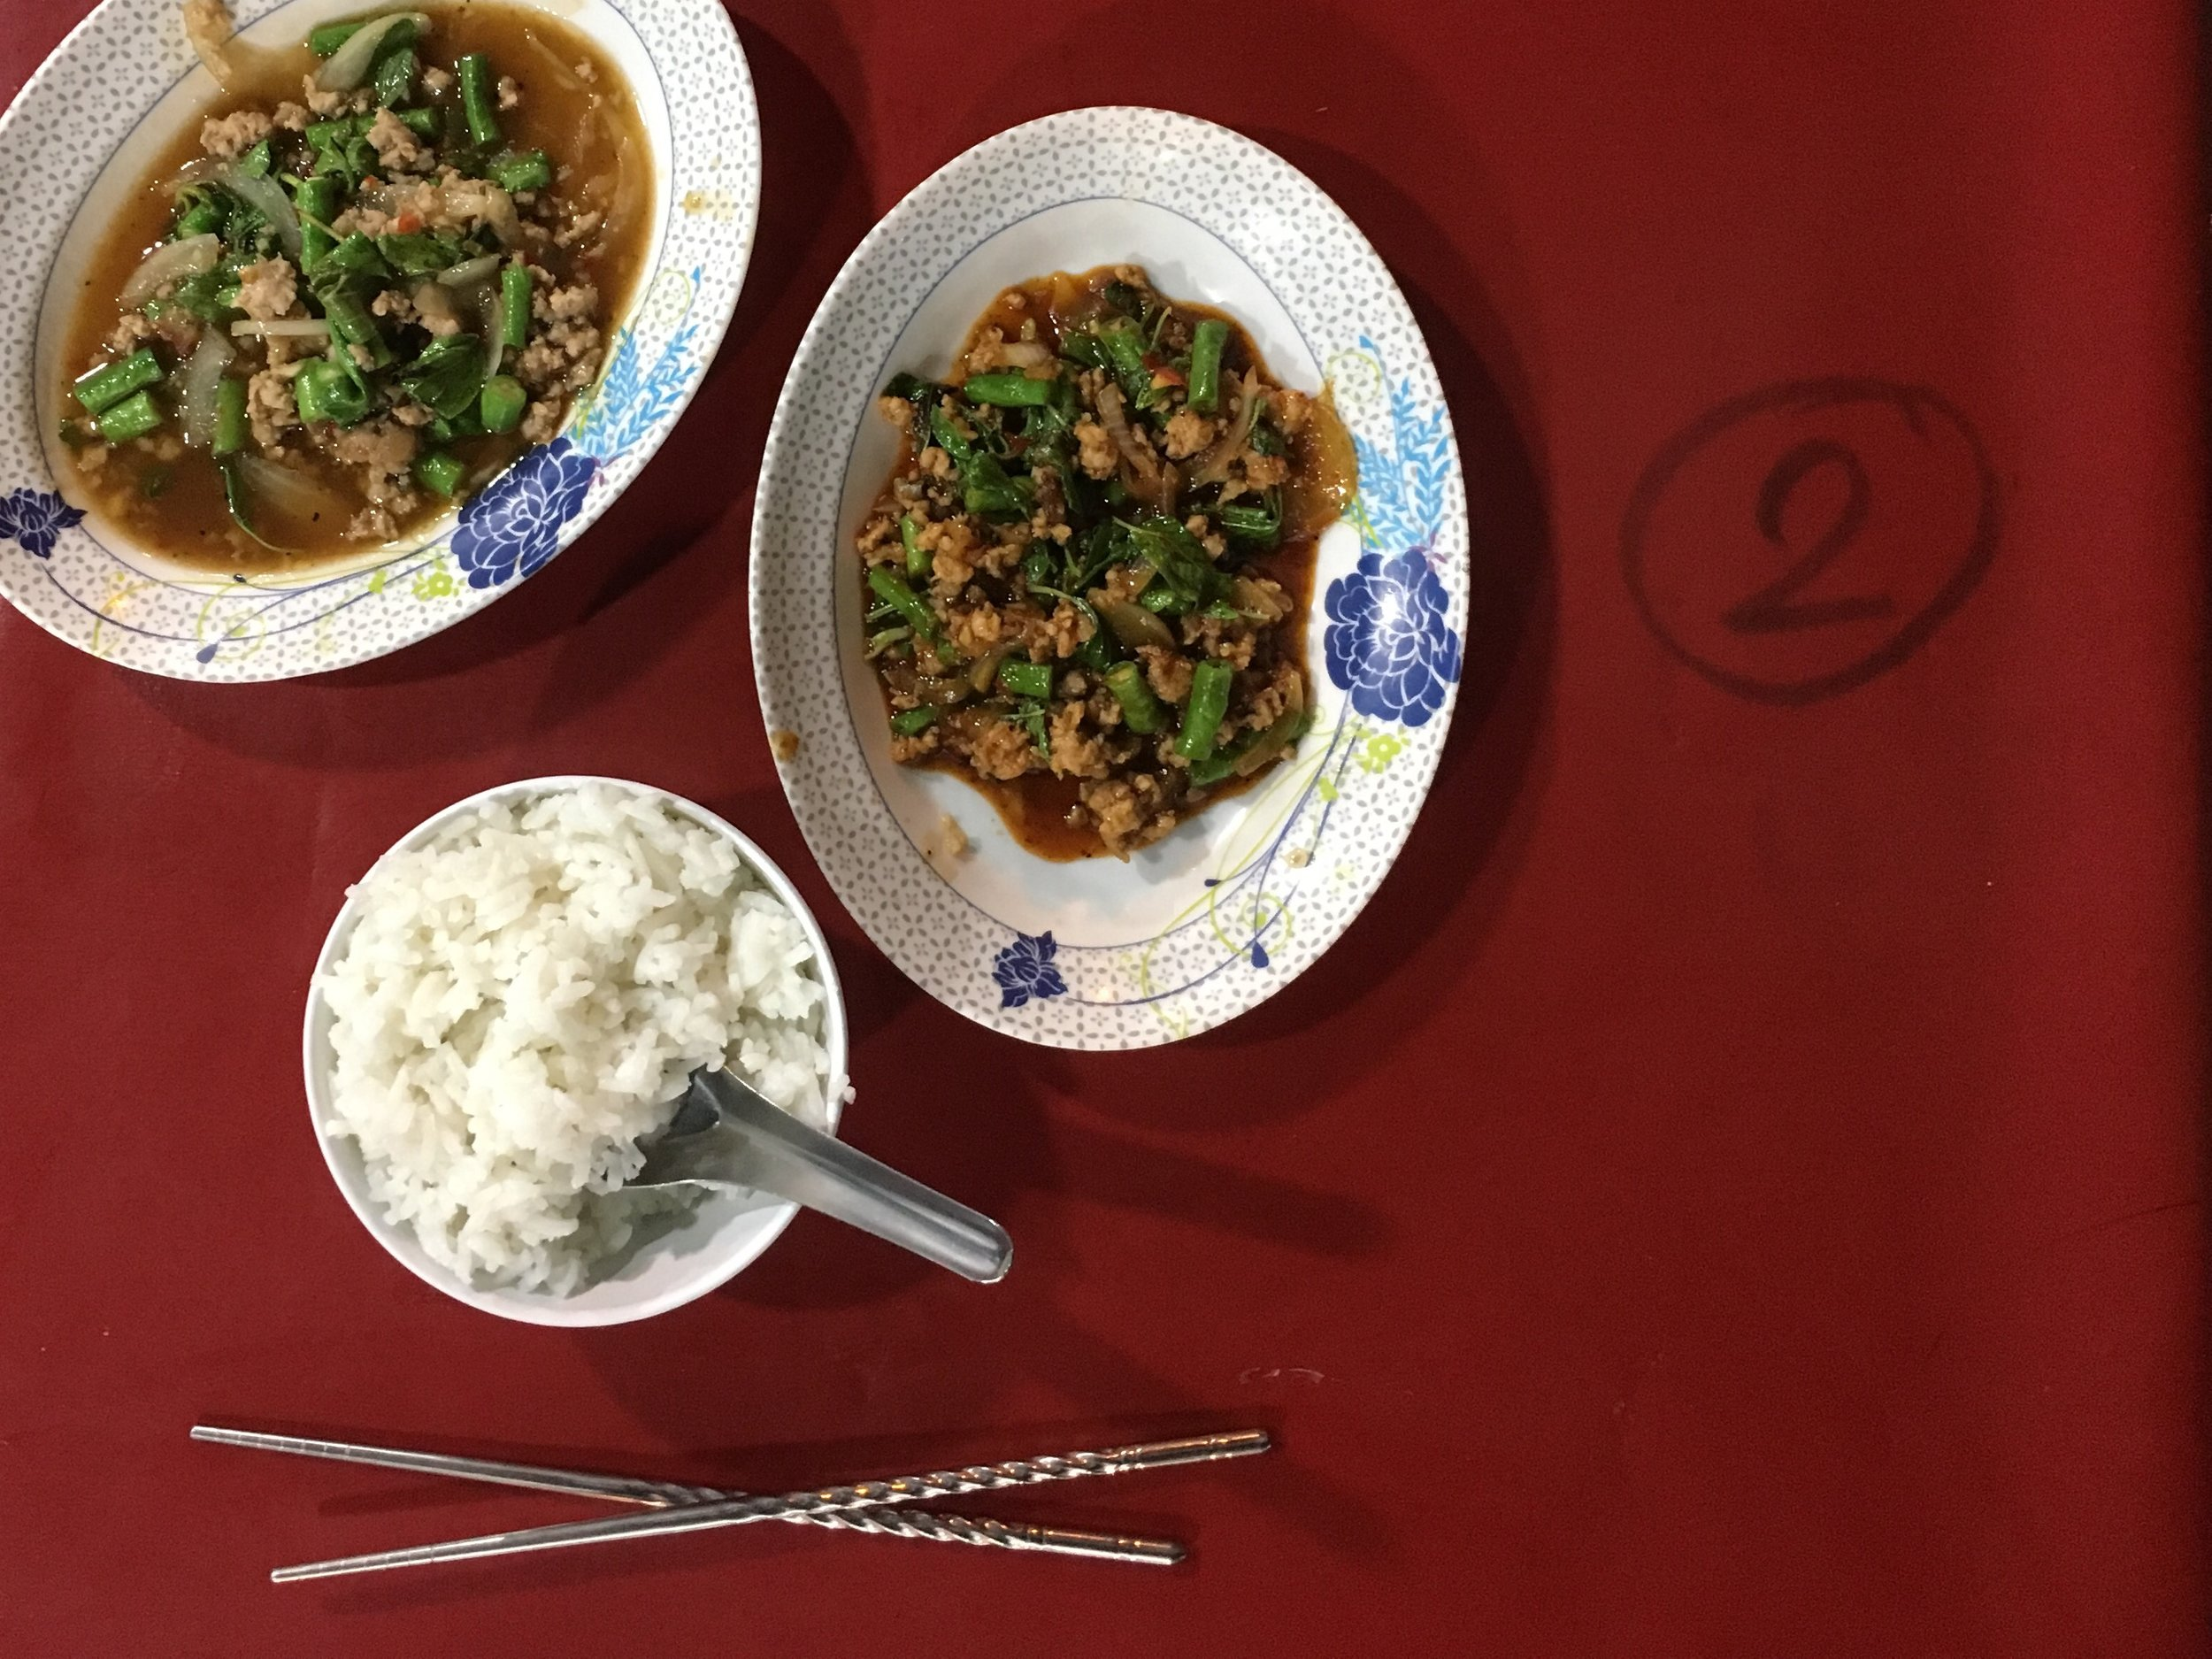 Pad prik gaeng with long beans and rice from a stall along the street in Chiang Mai, Thailand